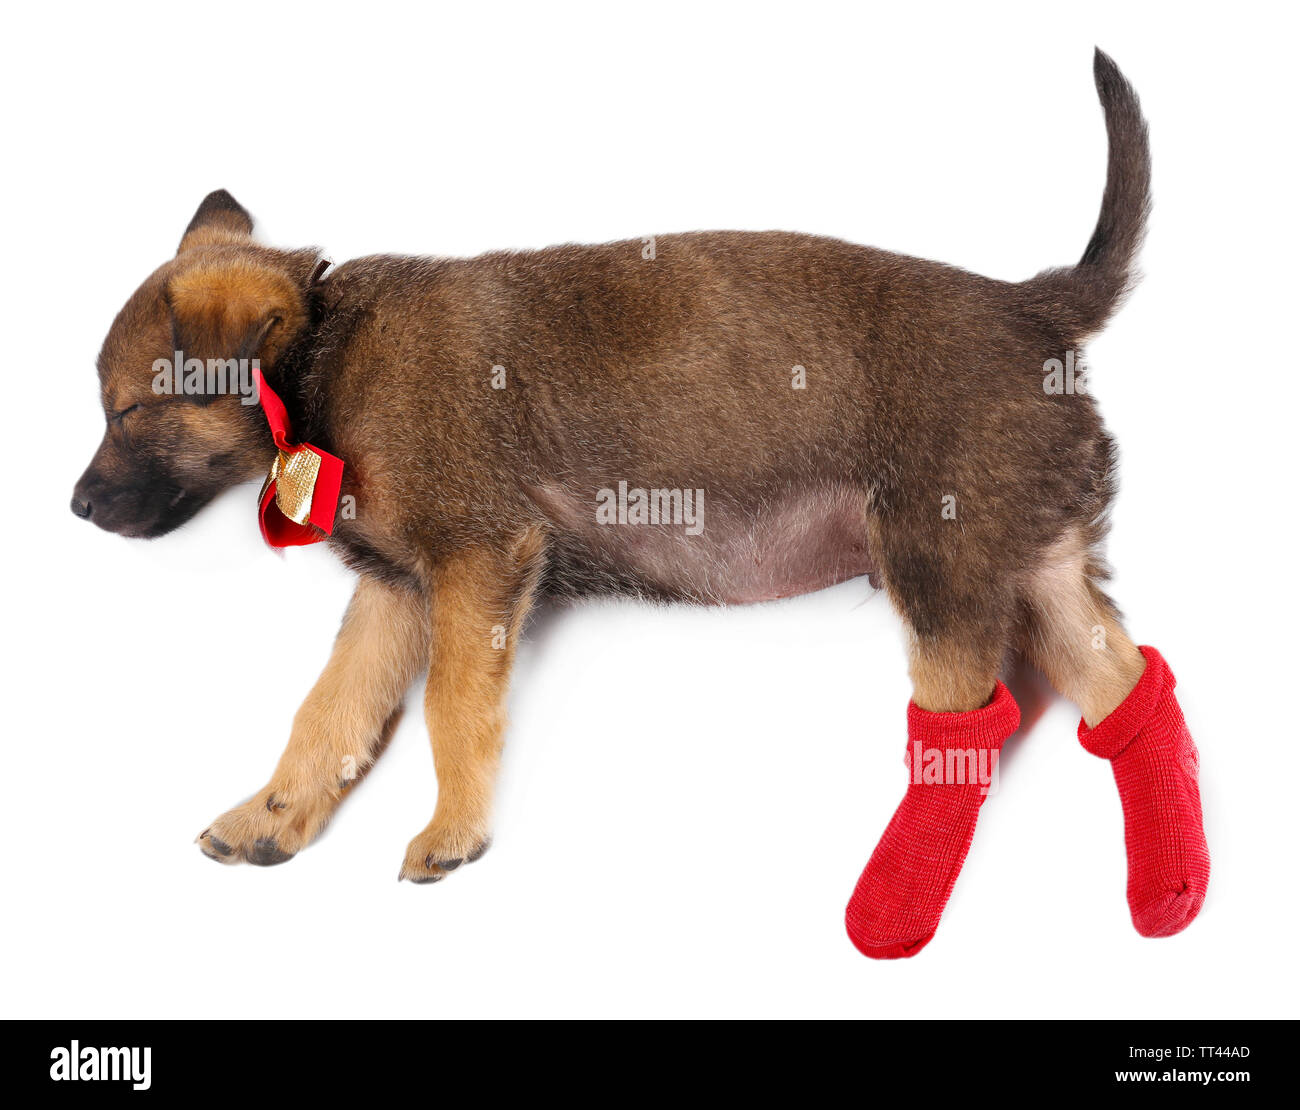 Sleeping puppy in red socks isolated on white - Stock Image